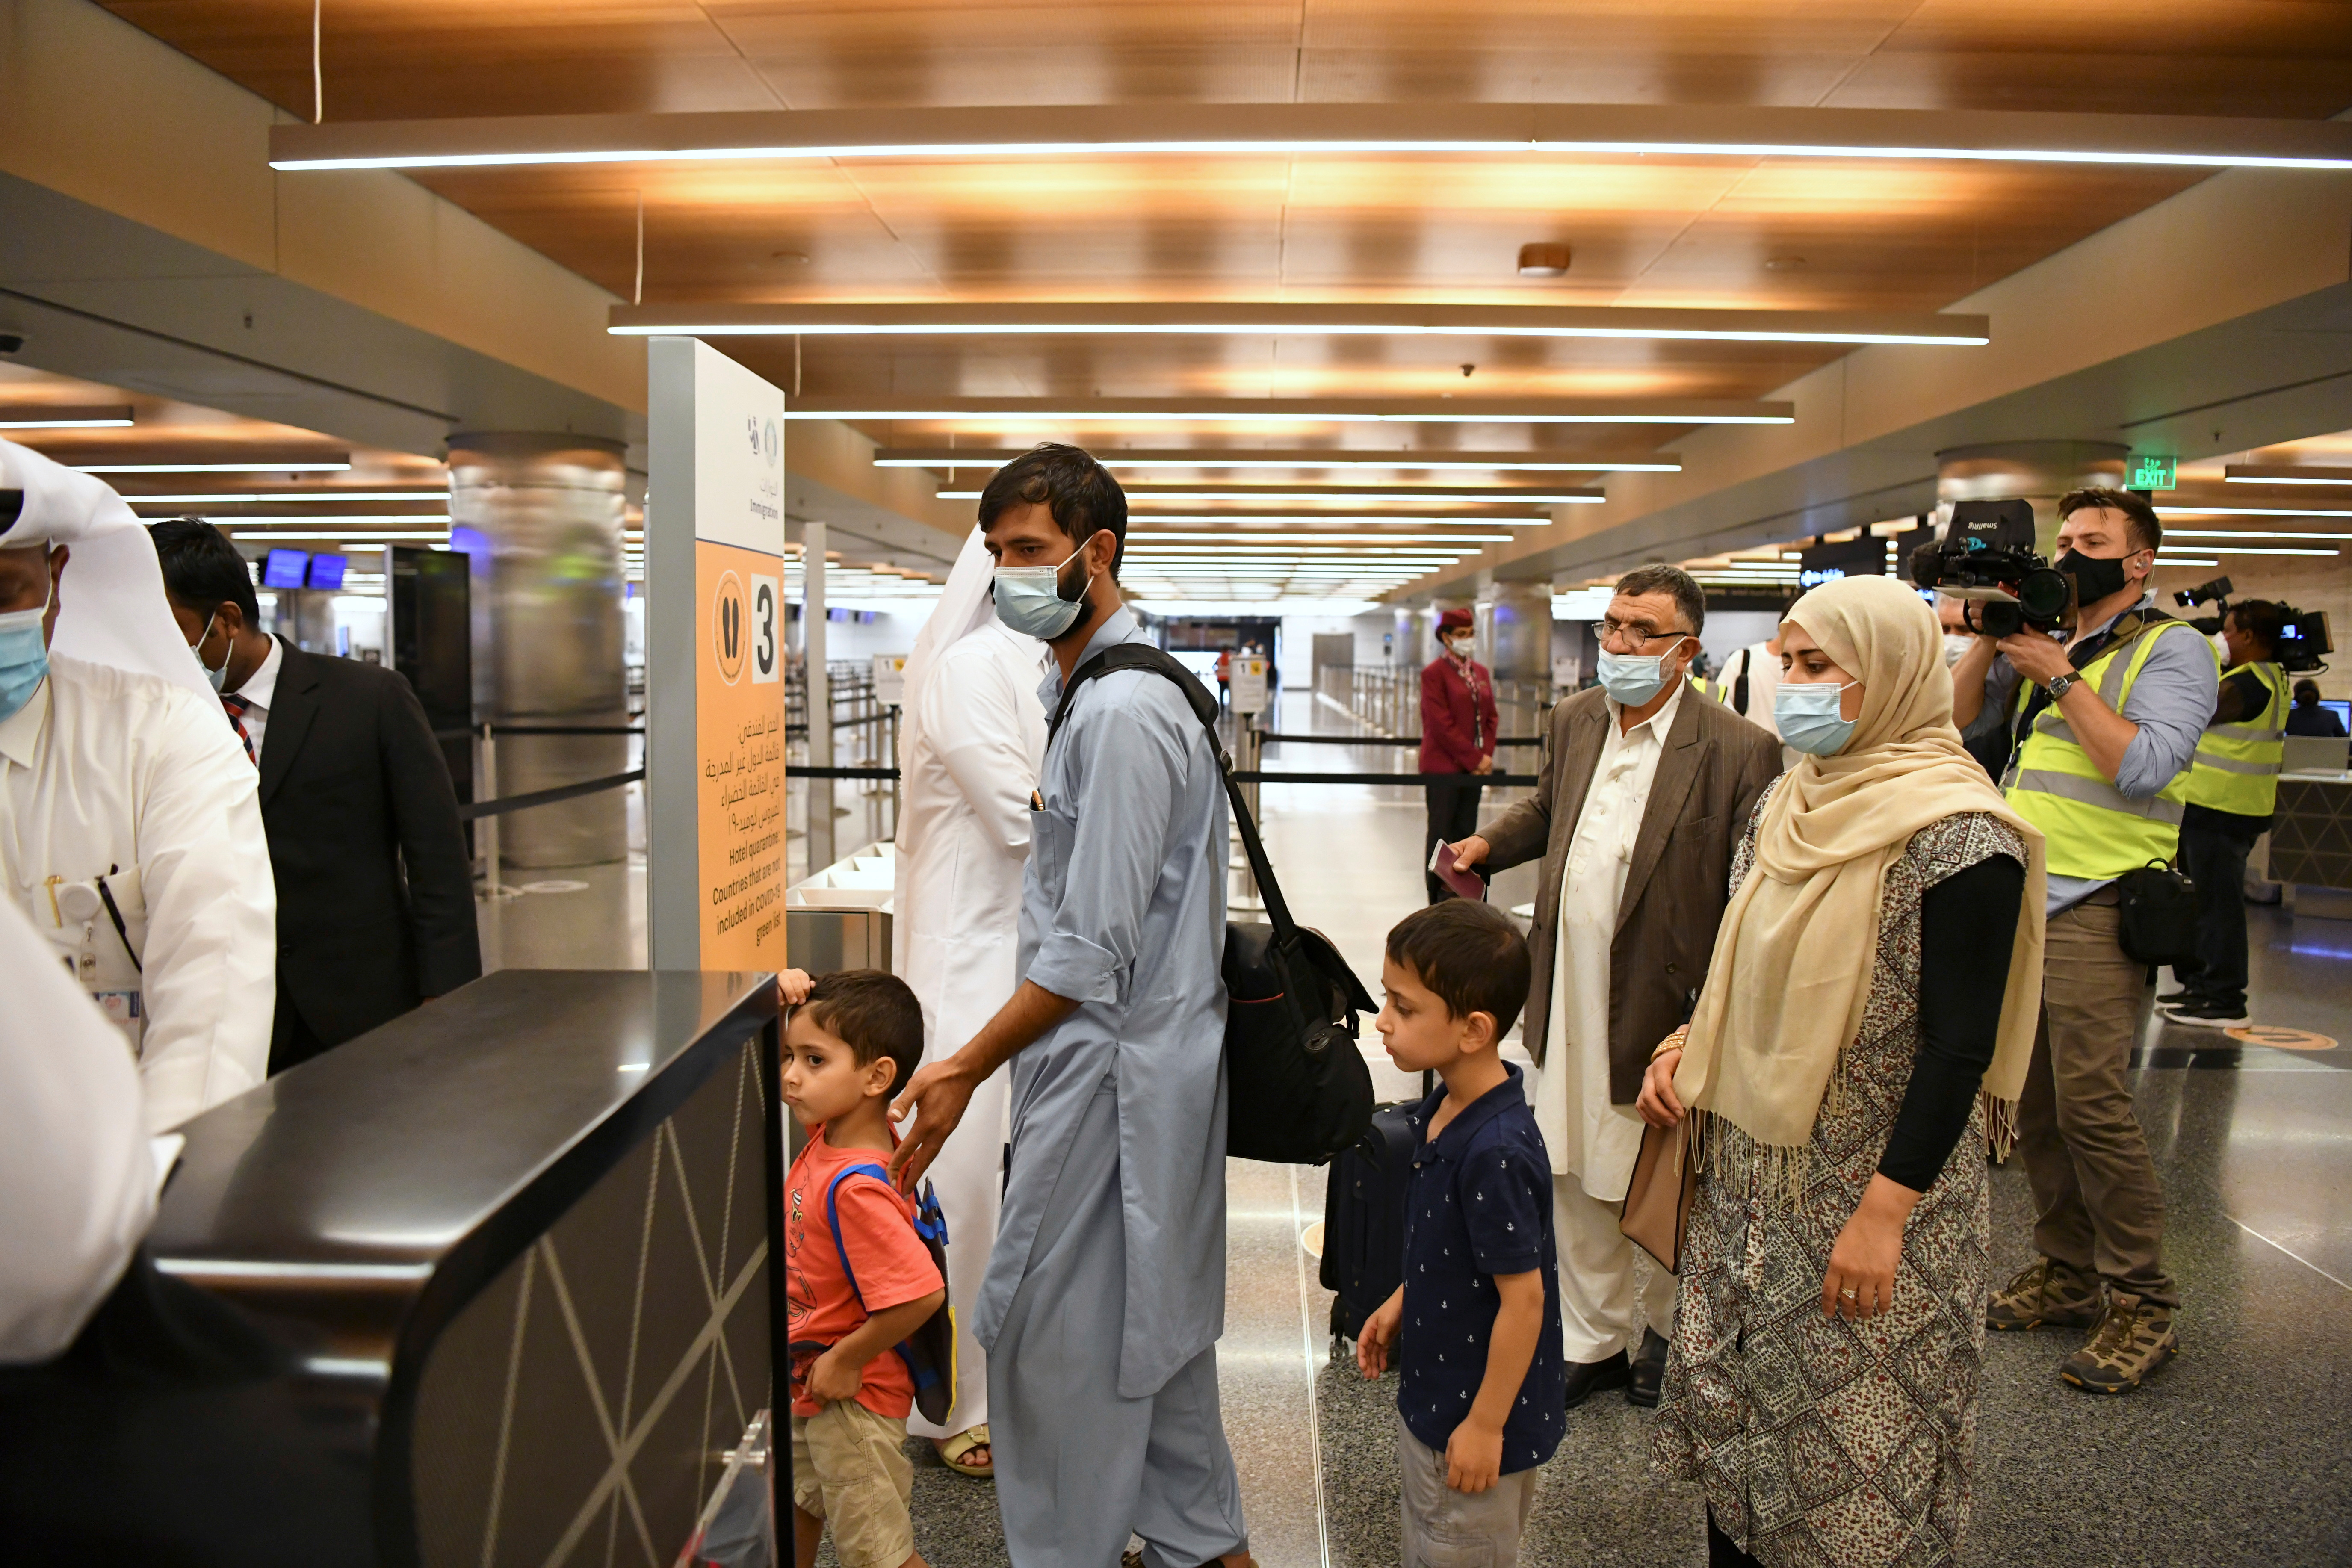 Passengers wait in line in the airport terminal upon arriving on a Qatar Airways plane from Kabul, Afghanistan, the first international commercial flight since the U.S. withdrawal from Afghanistan, in Doha, Qatar, September 9, 2021. REUTERS/Nooman Ben Amor